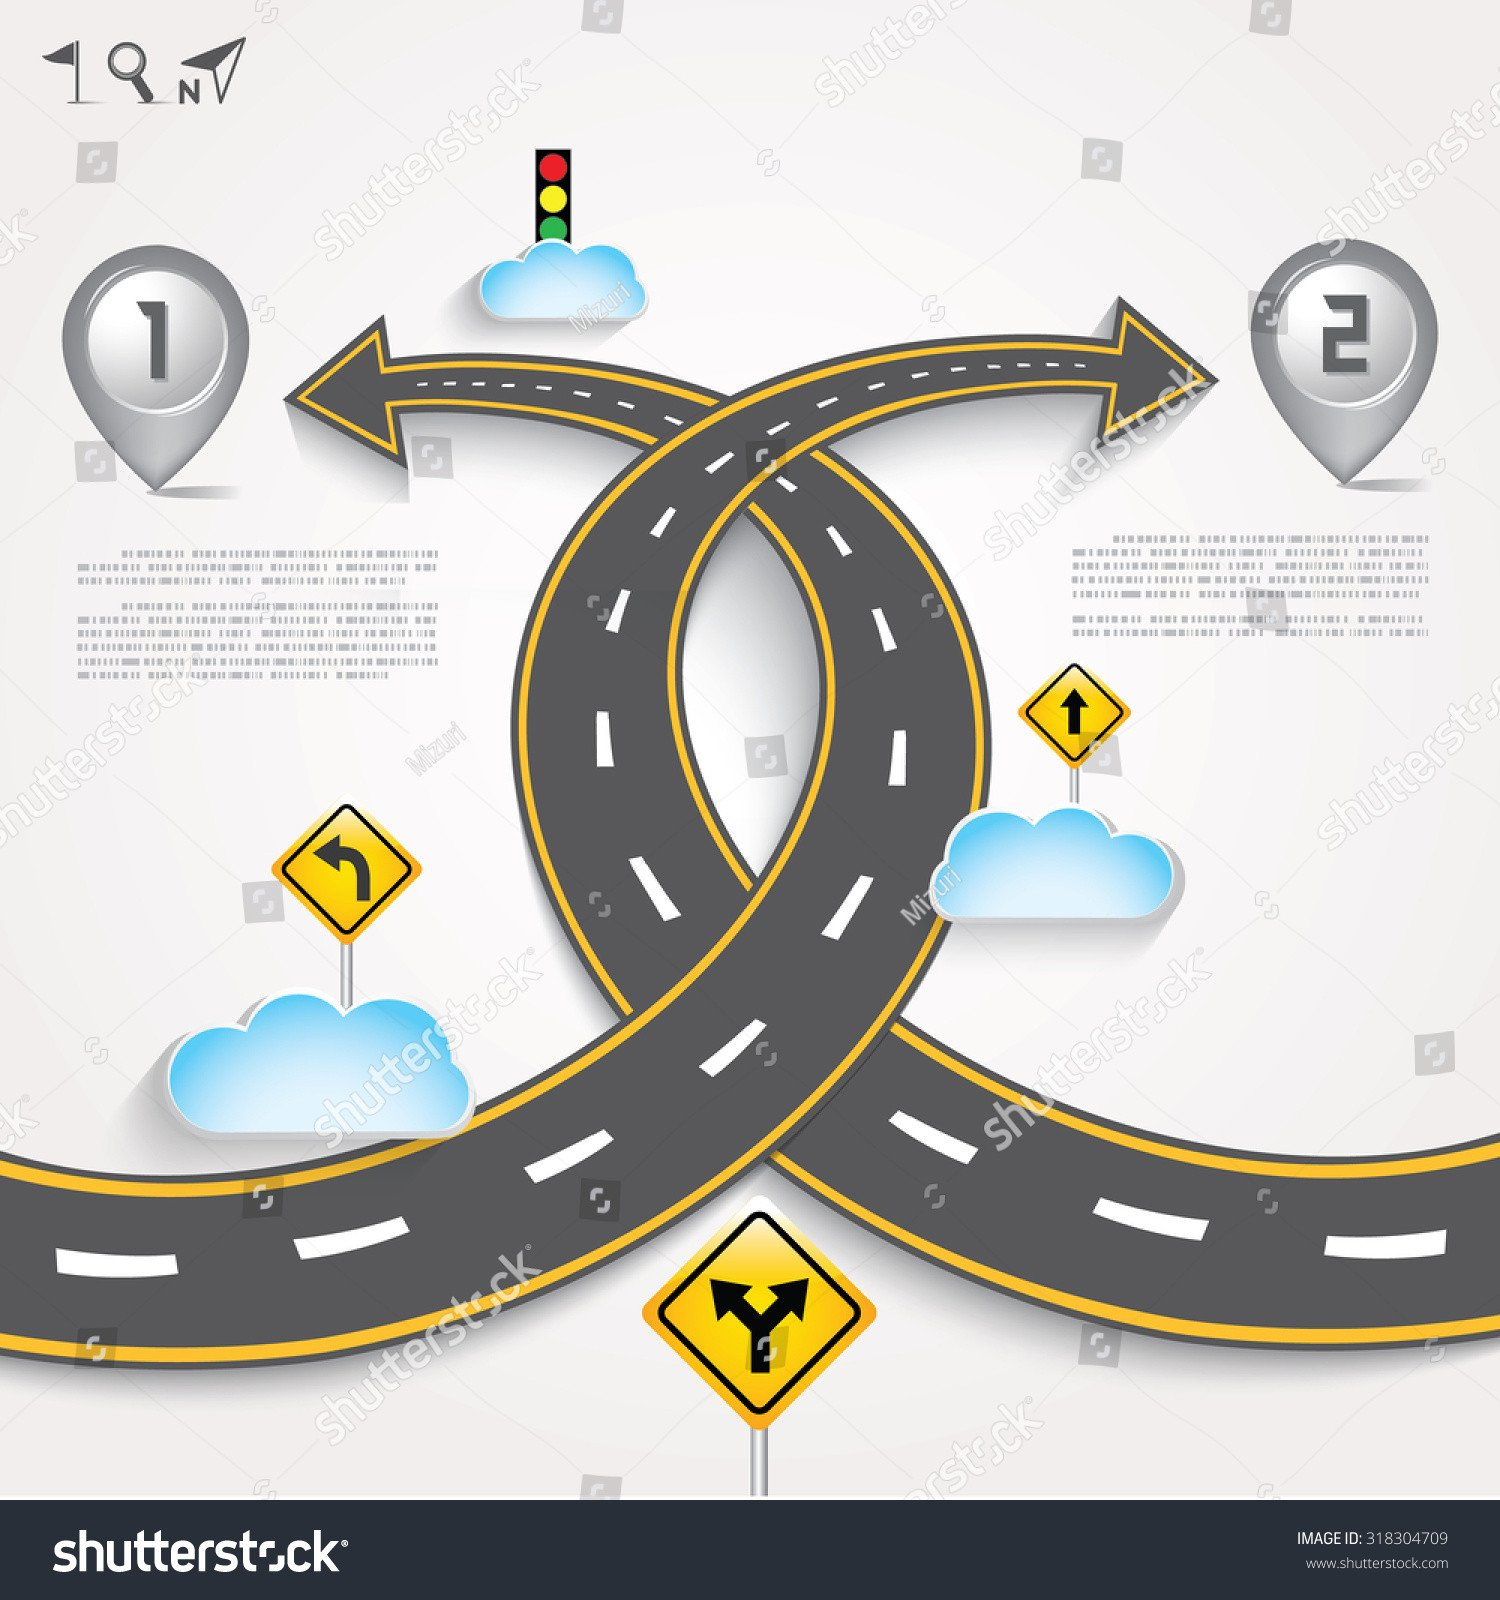 Street Stock Template Design Road & Street Template Background and Map Pointer